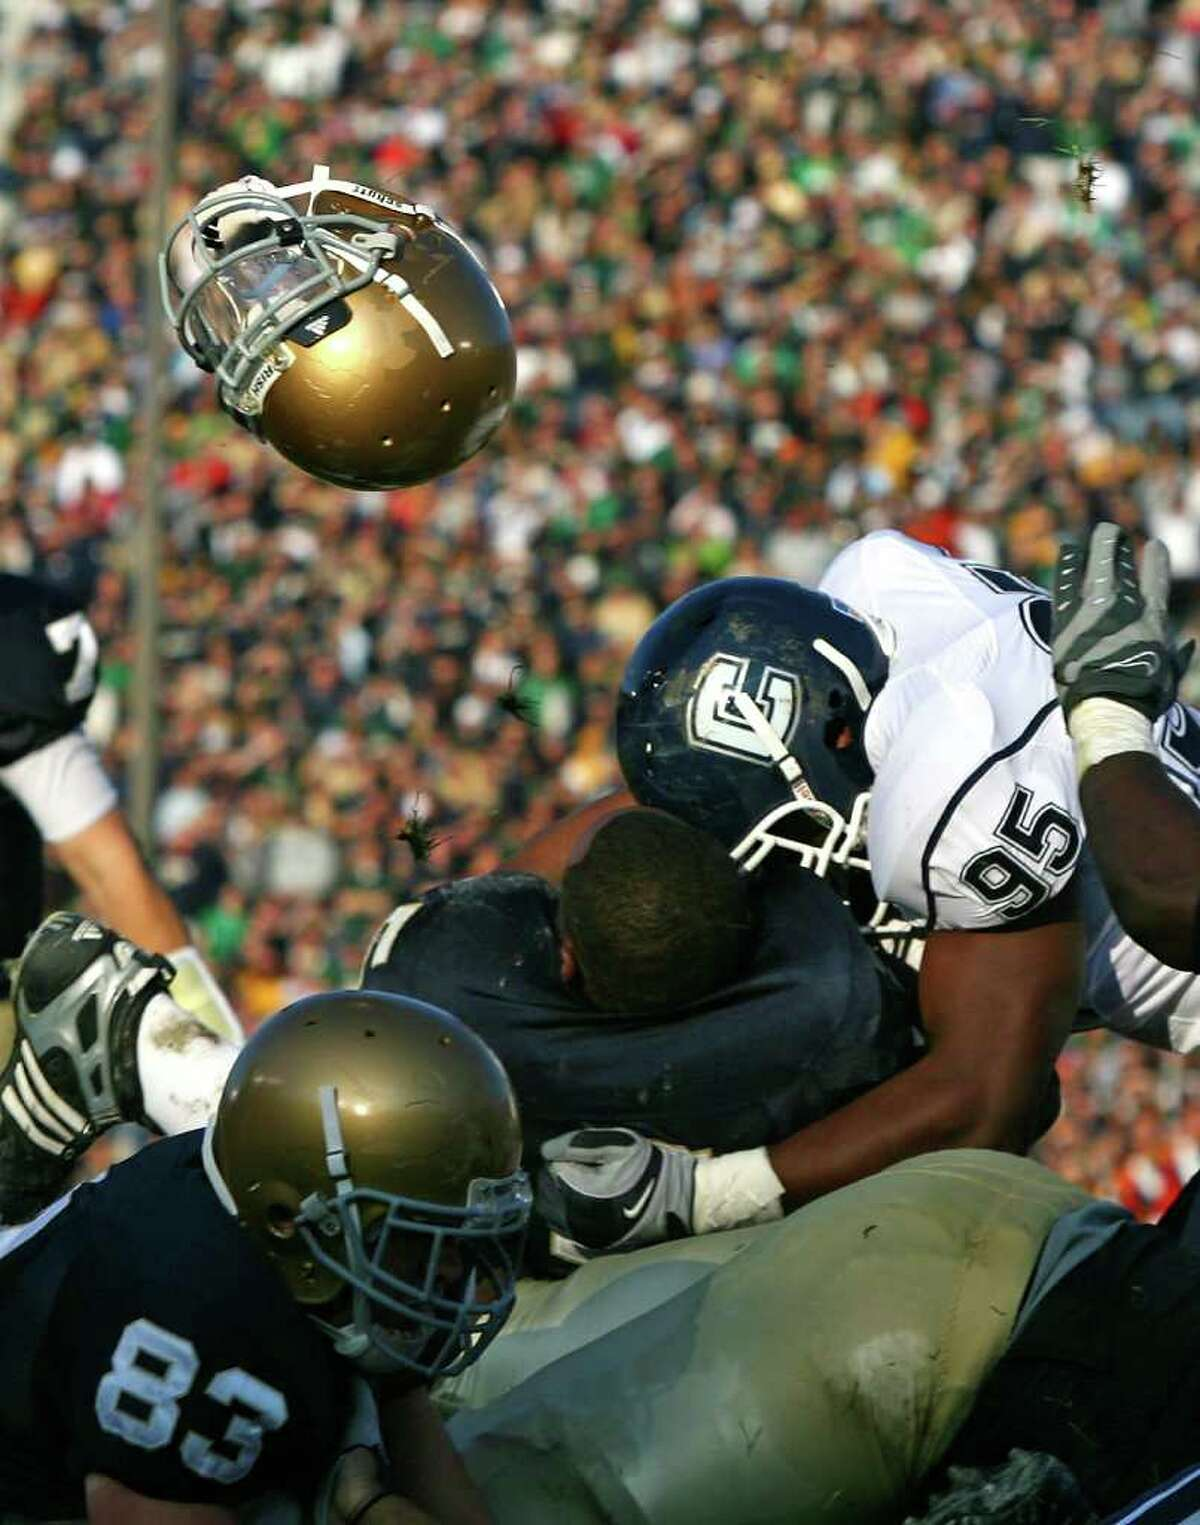 SOUTH BEND, IN - NOVEMBER 21: Armando Allen #5 of the Notre Dame Fighting Irish looses his helmut as he is hit at the goalline by Greg Lloyd #95 of the Univeristy of Connecticut Huskies at Notre Dame Stadium on November 21, 2009 in South Bend, Indiana. (Photo by Jonathan Daniel/Getty Images) *** Local Caption *** Armando Allen;Greg Lloyd